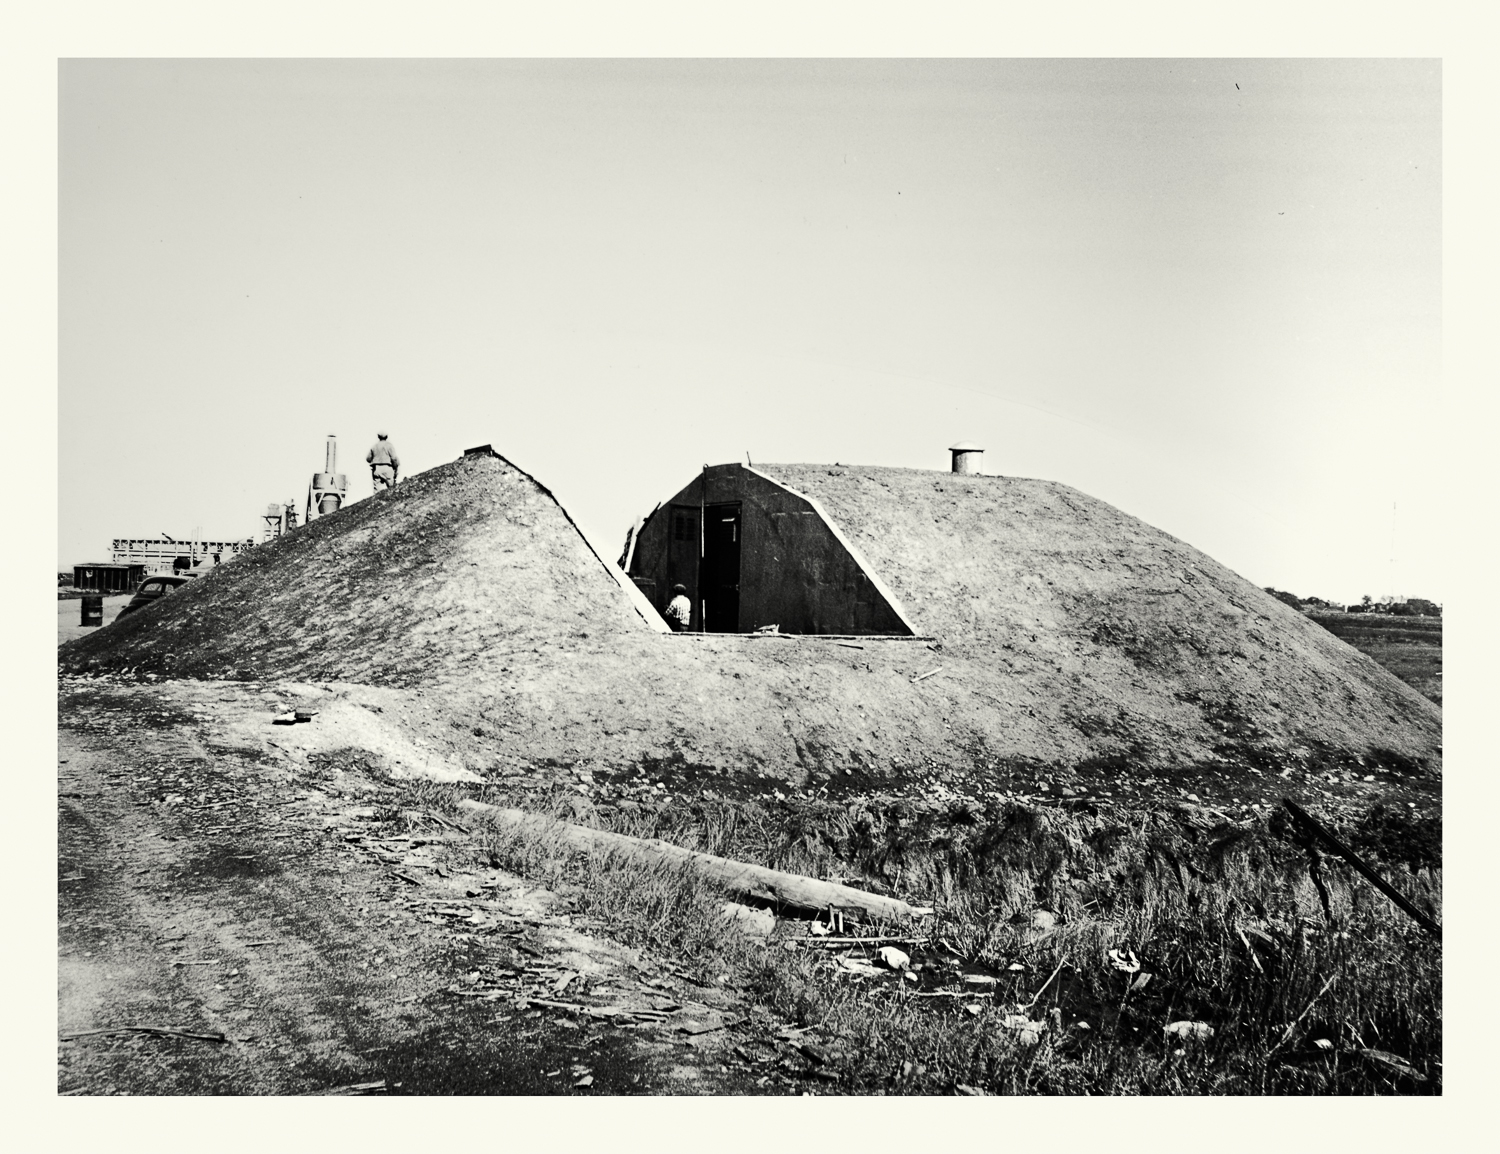 """Photograph No. PC 466. """"Photograph depicting the construction of a bunker containing naval armaments at the Hingham Naval Ammunition Depot."""" c. 1930's; Records of Naval Districts and Shore Establishments, Record Group 181, NARA Boston."""